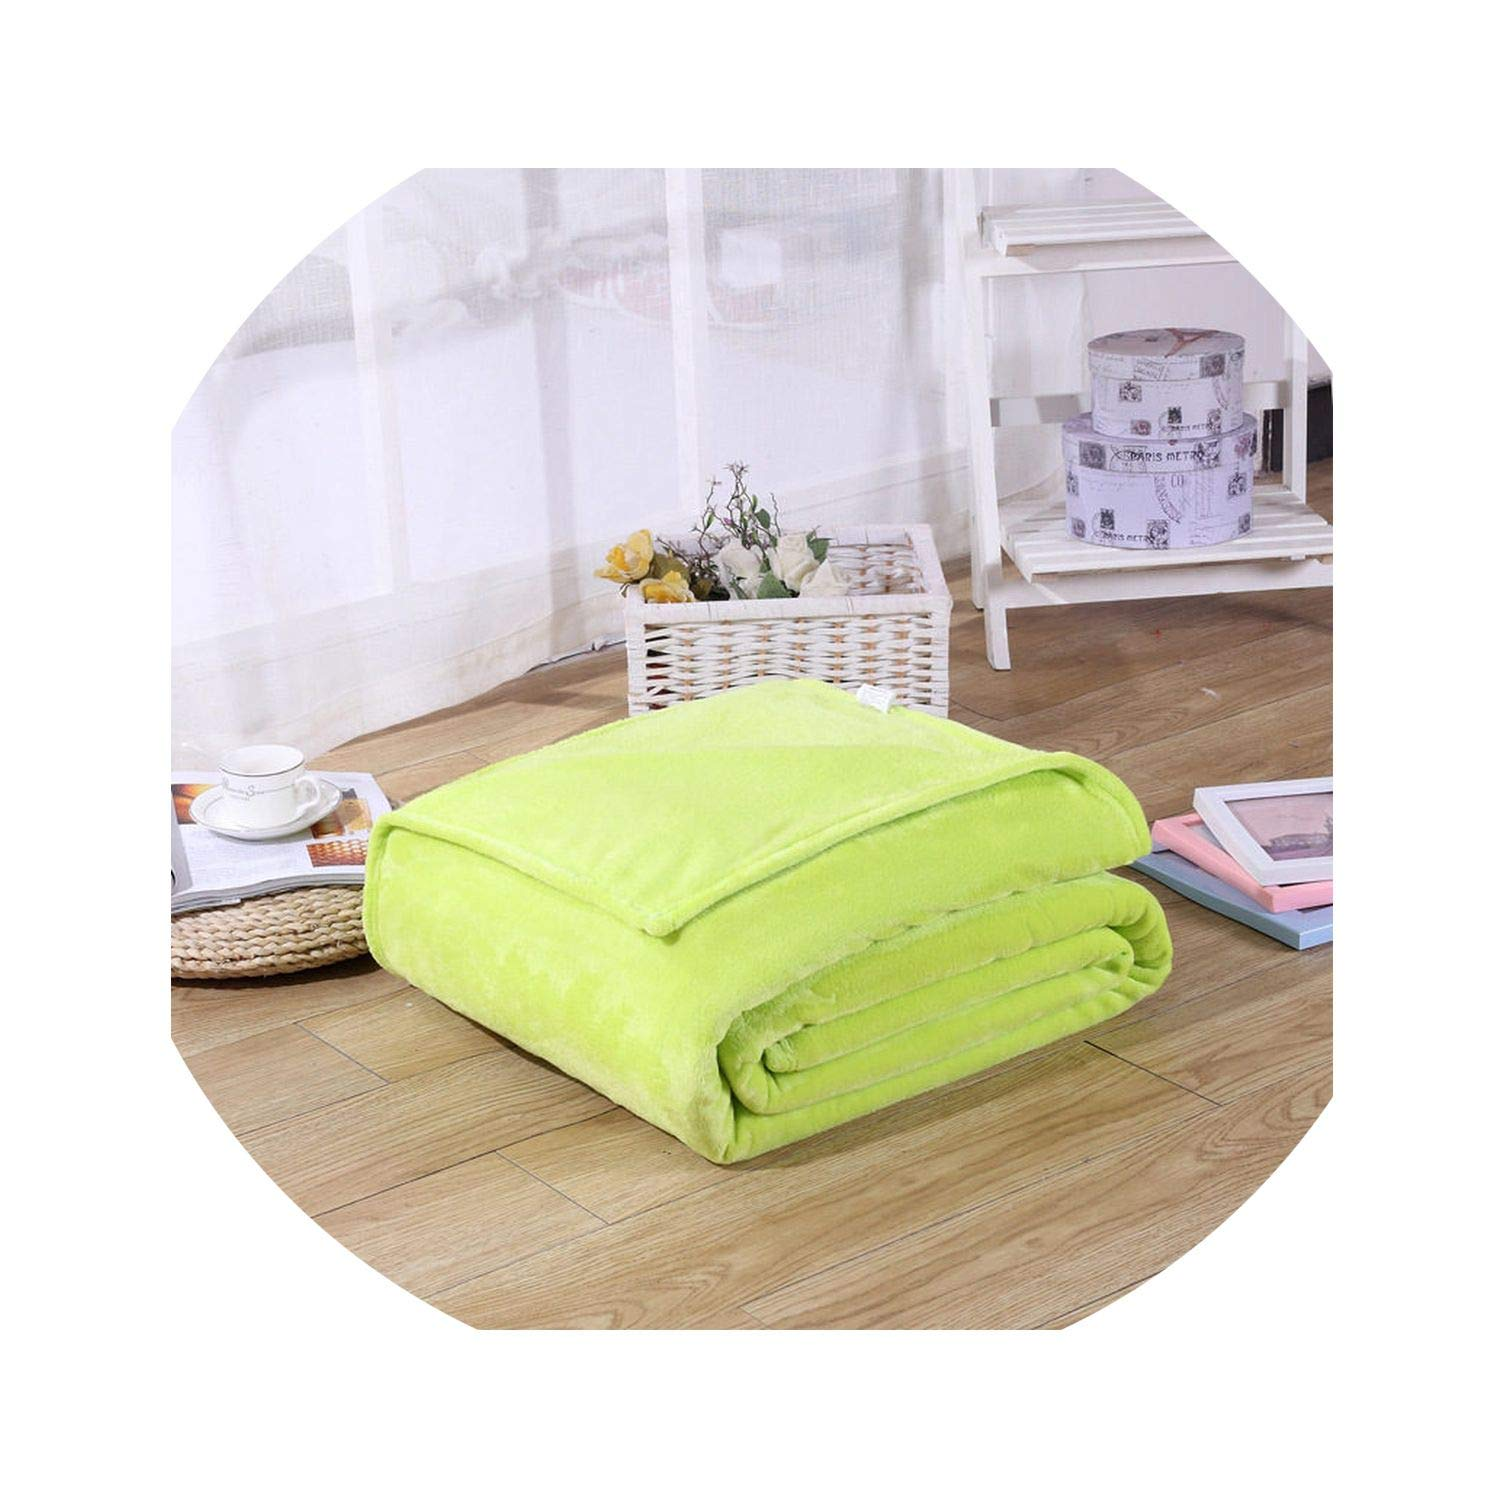 20X28Inches Blanket Super Soft Solid Black Color Coral Fleece Blanket Warm Sofa Cover Twin Queen Size,Lime Green,50X70Cm